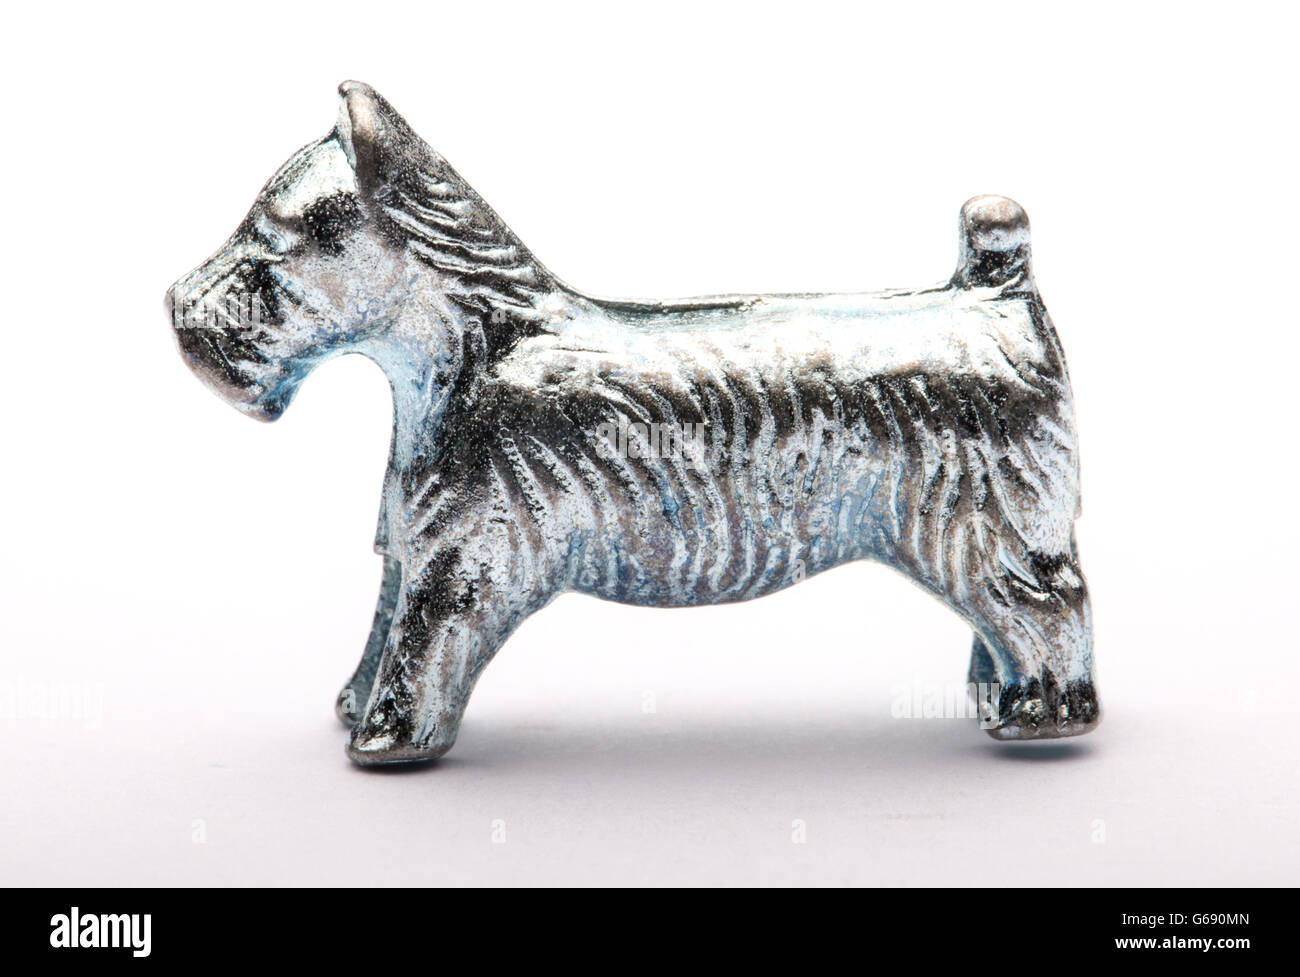 Monopoly Dog piece against a white background - Stock Image